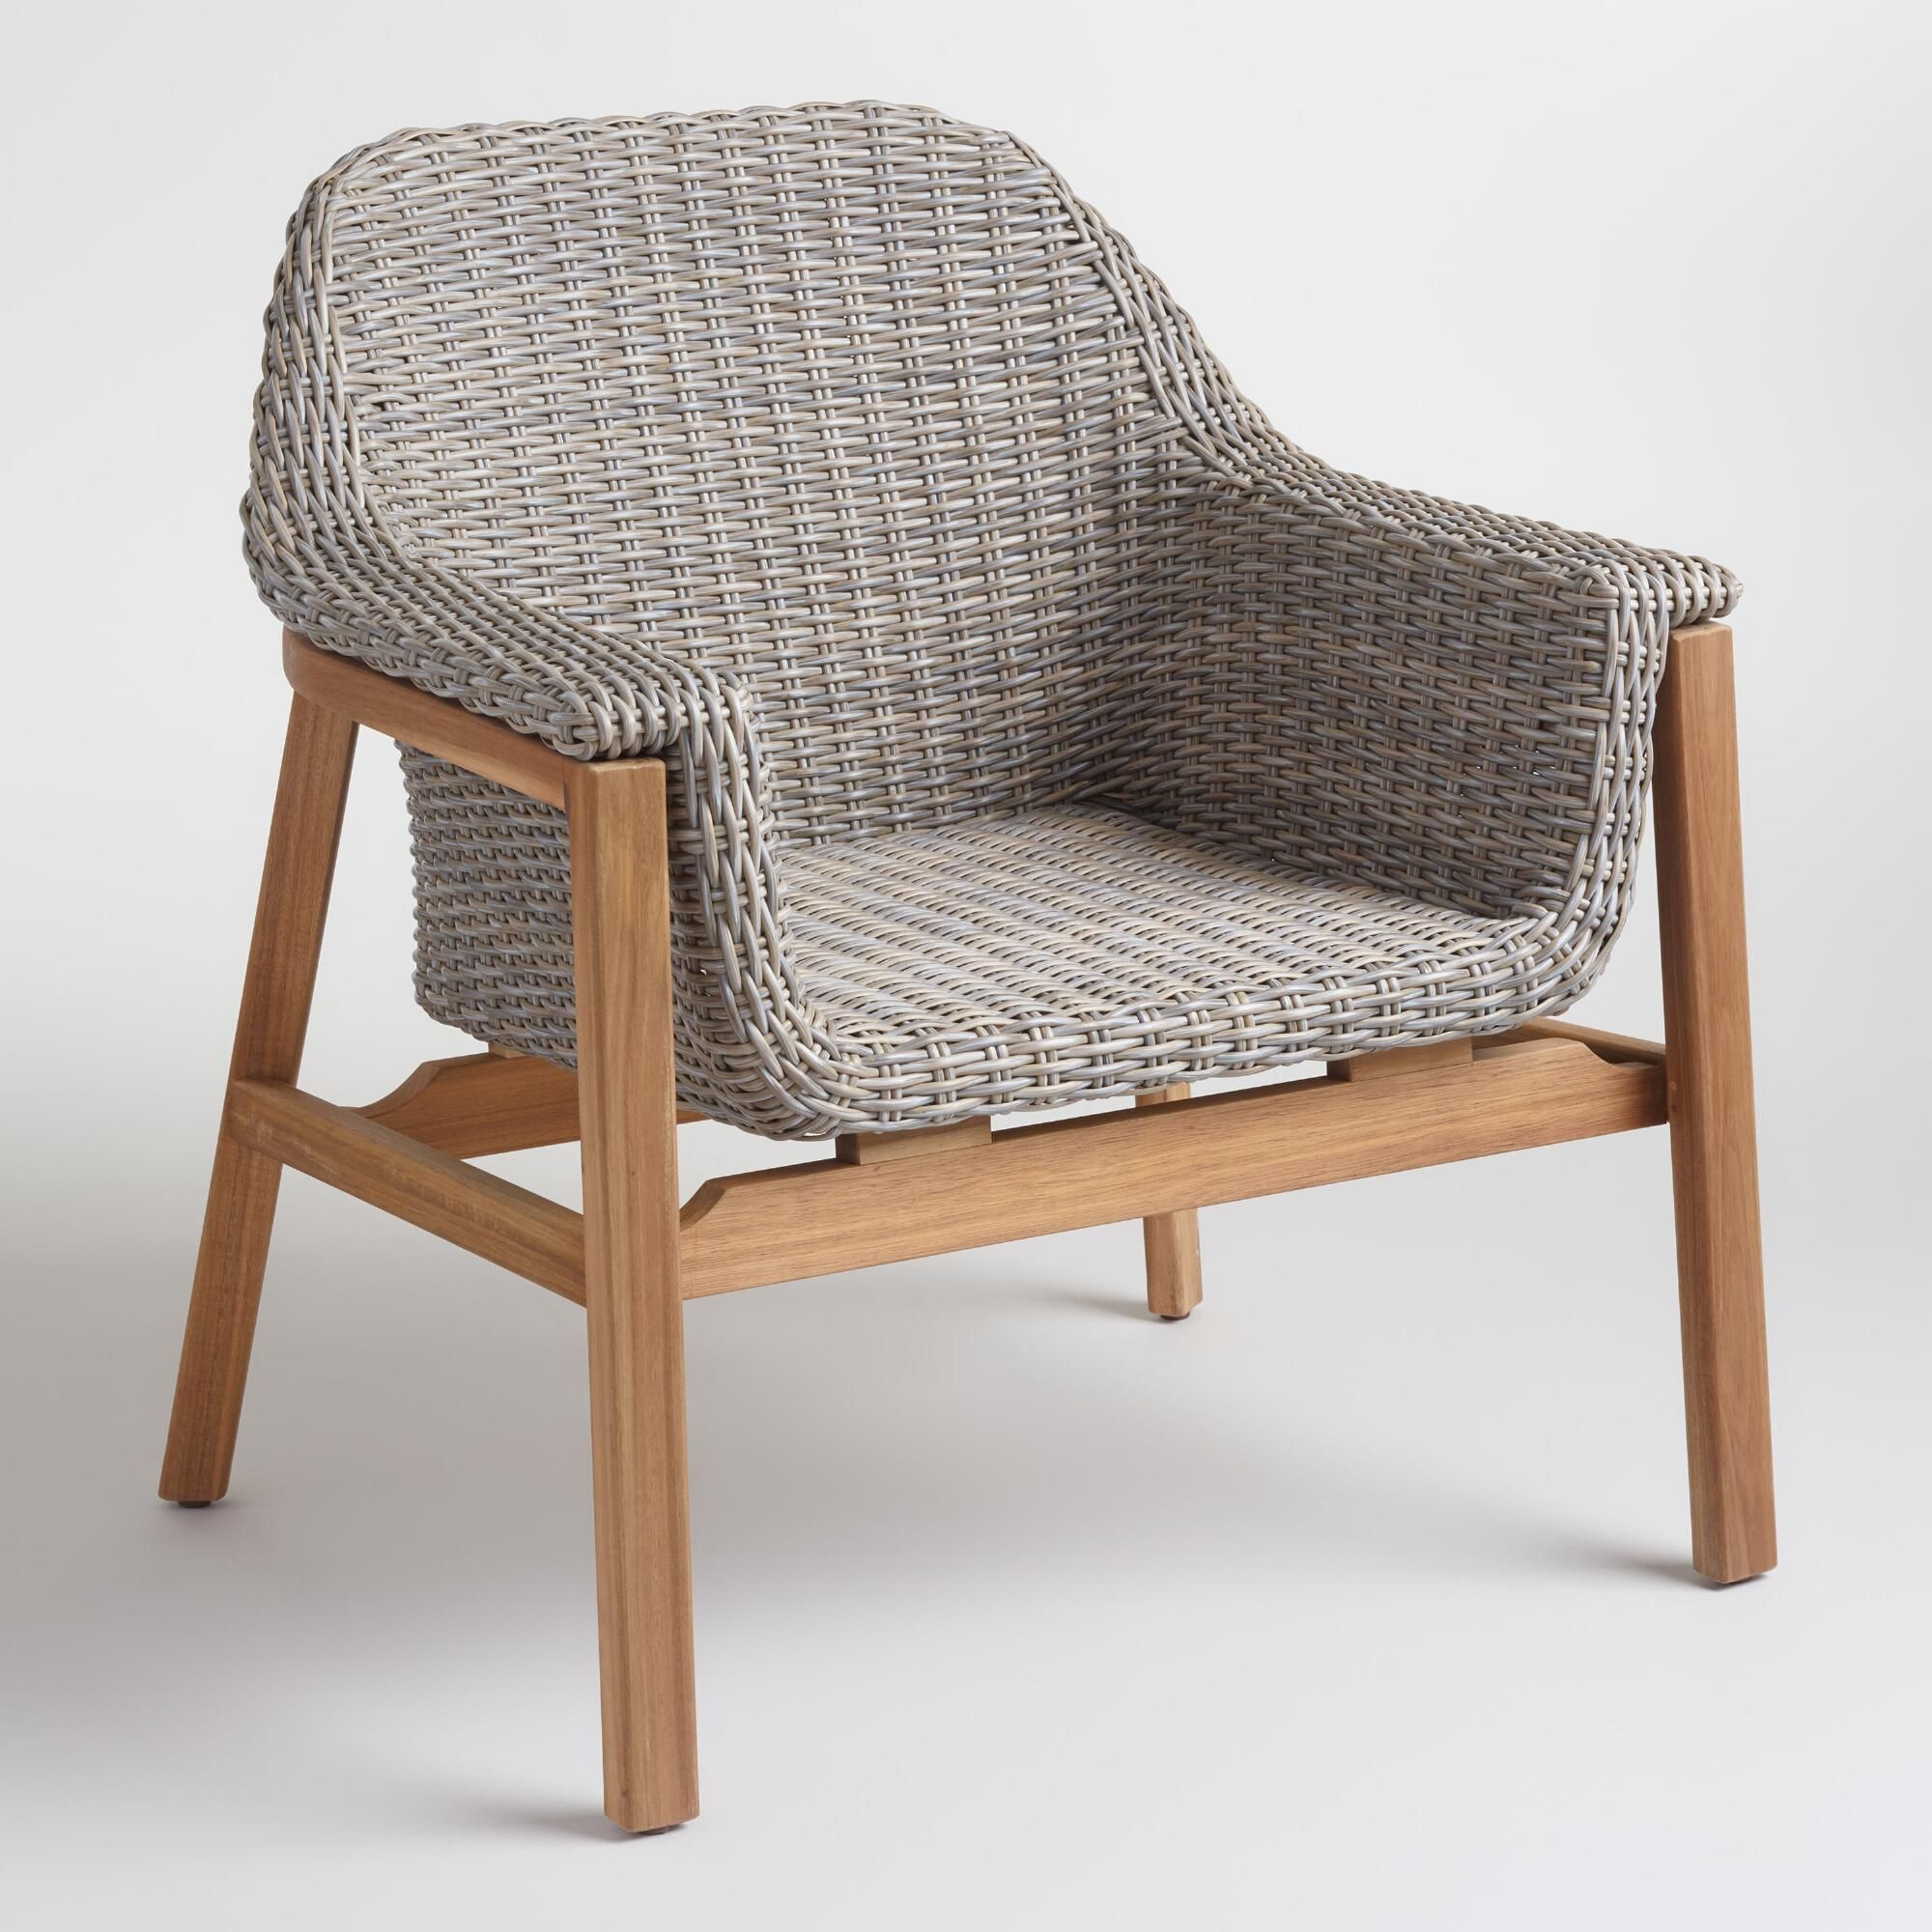 Our contemporary armchair boasts gray weather resistant wicker